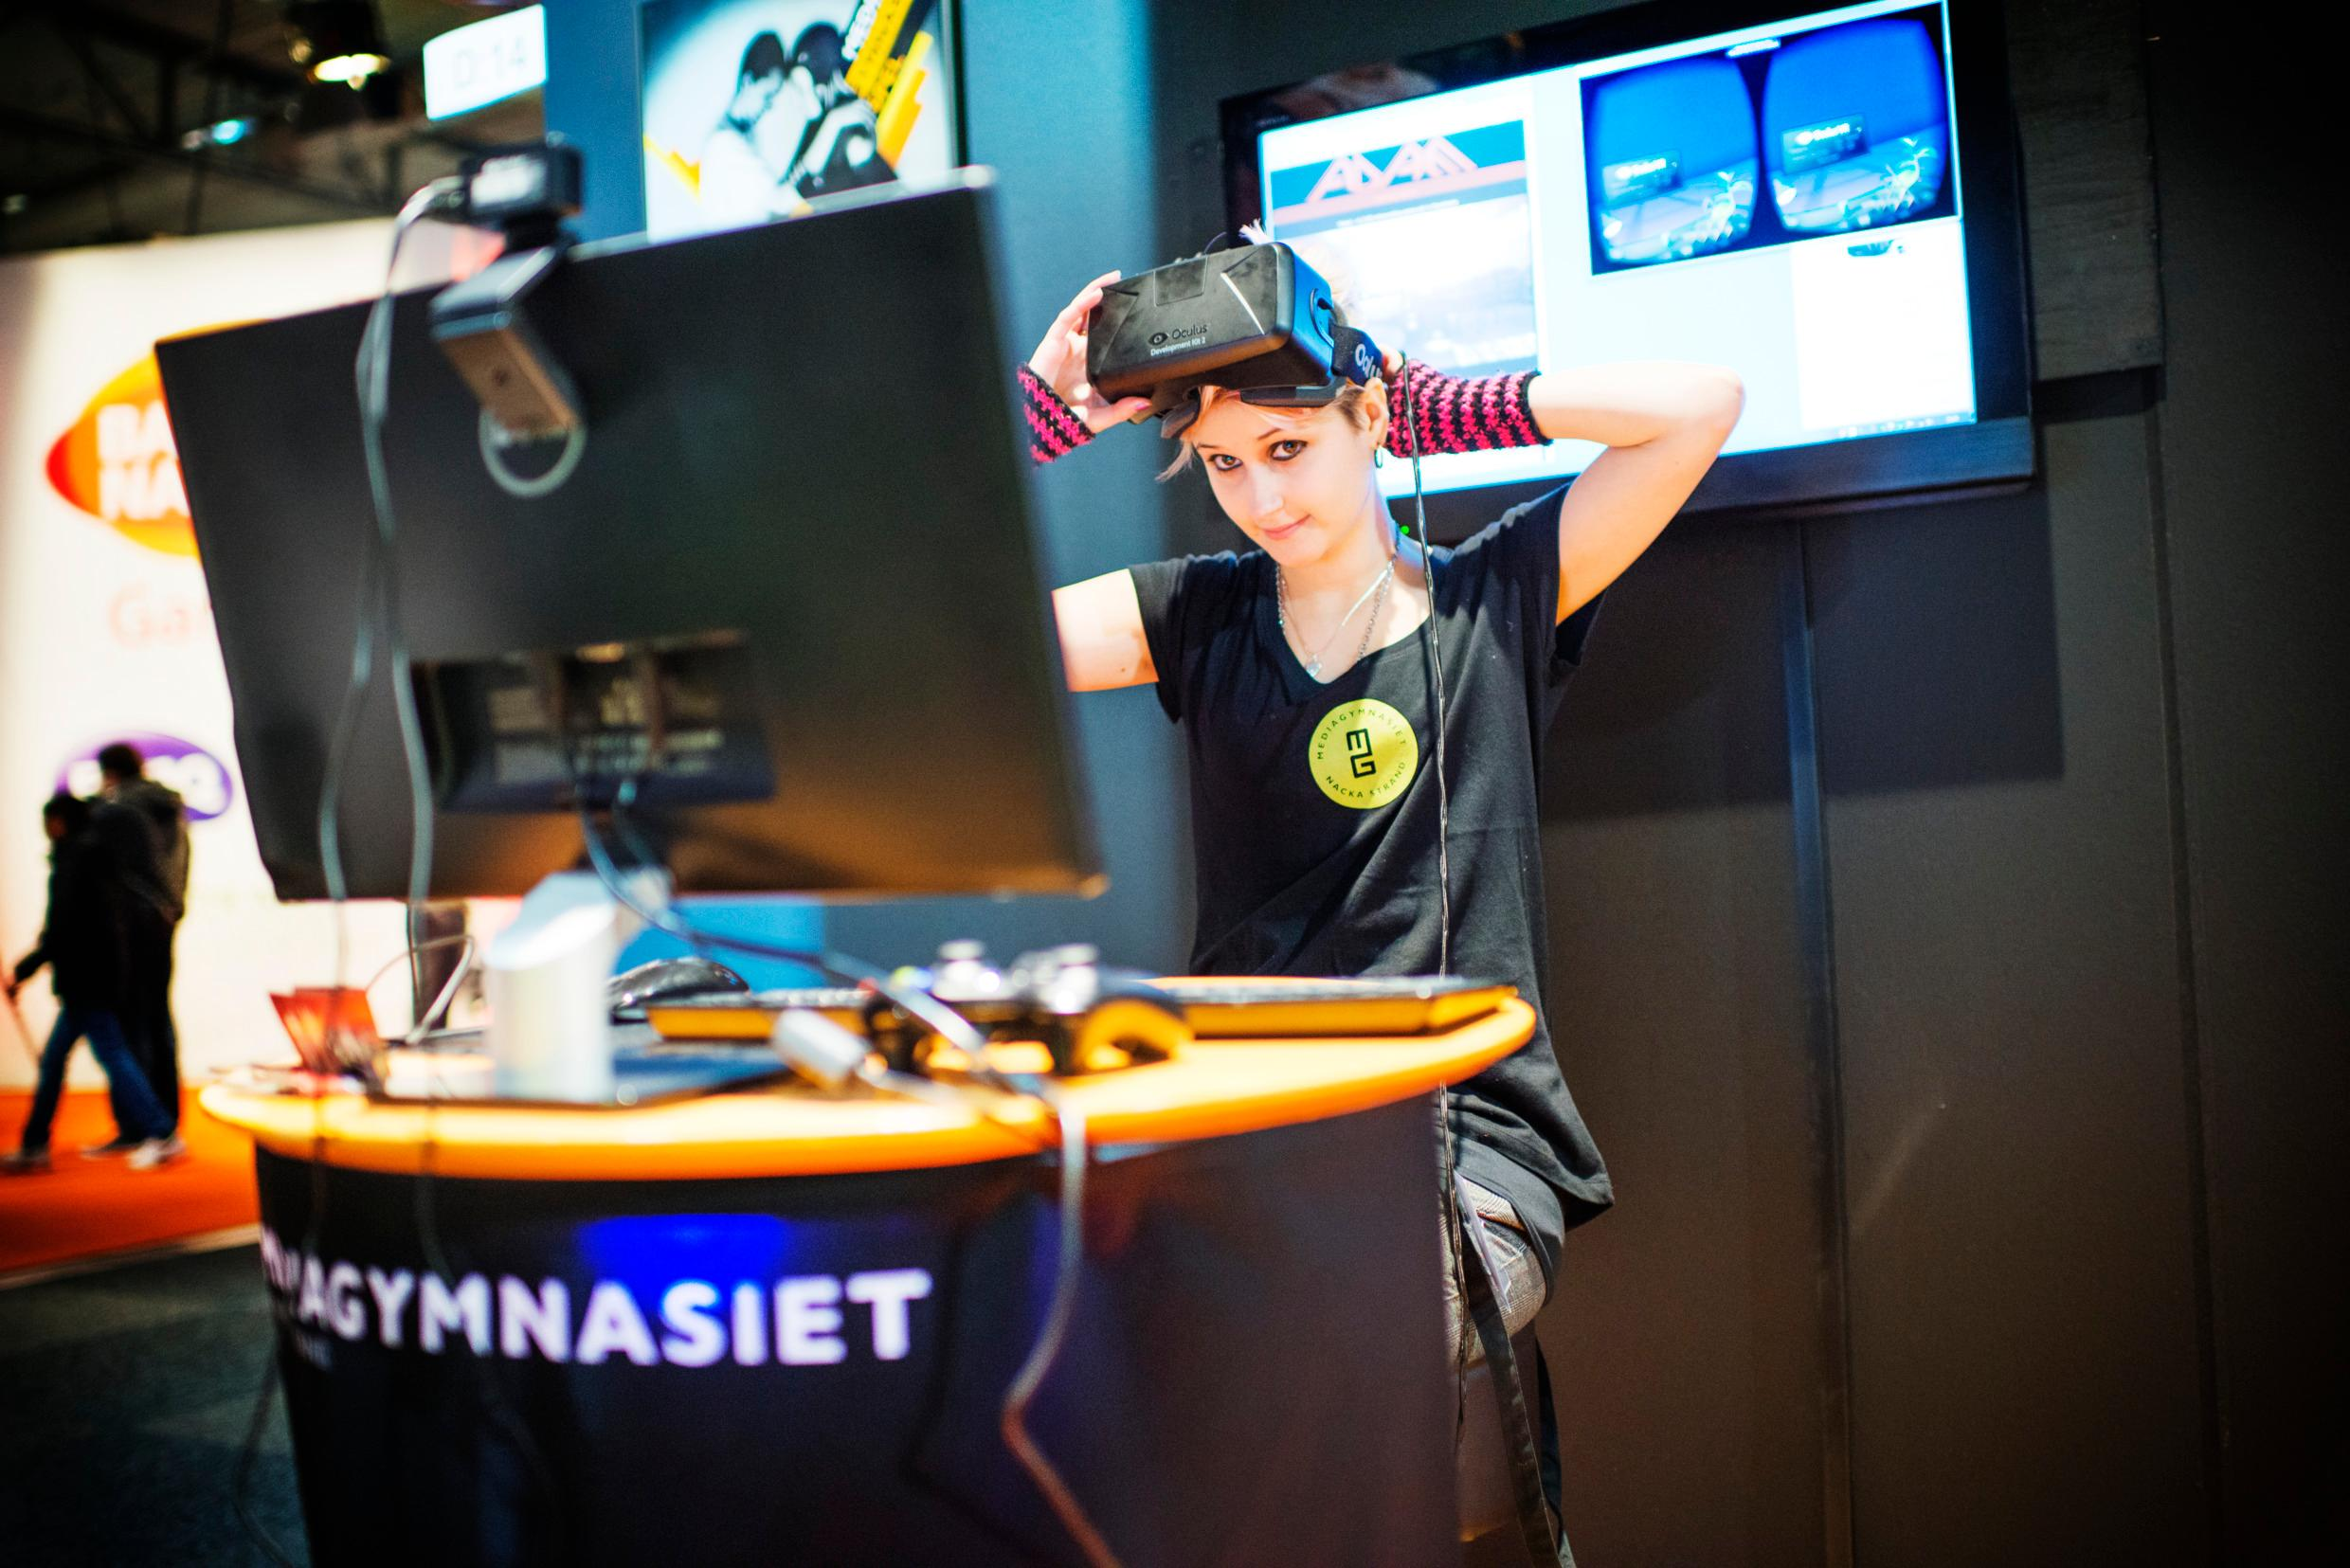 A woman sitting in front of a big computer screen with a VR headset on her head.